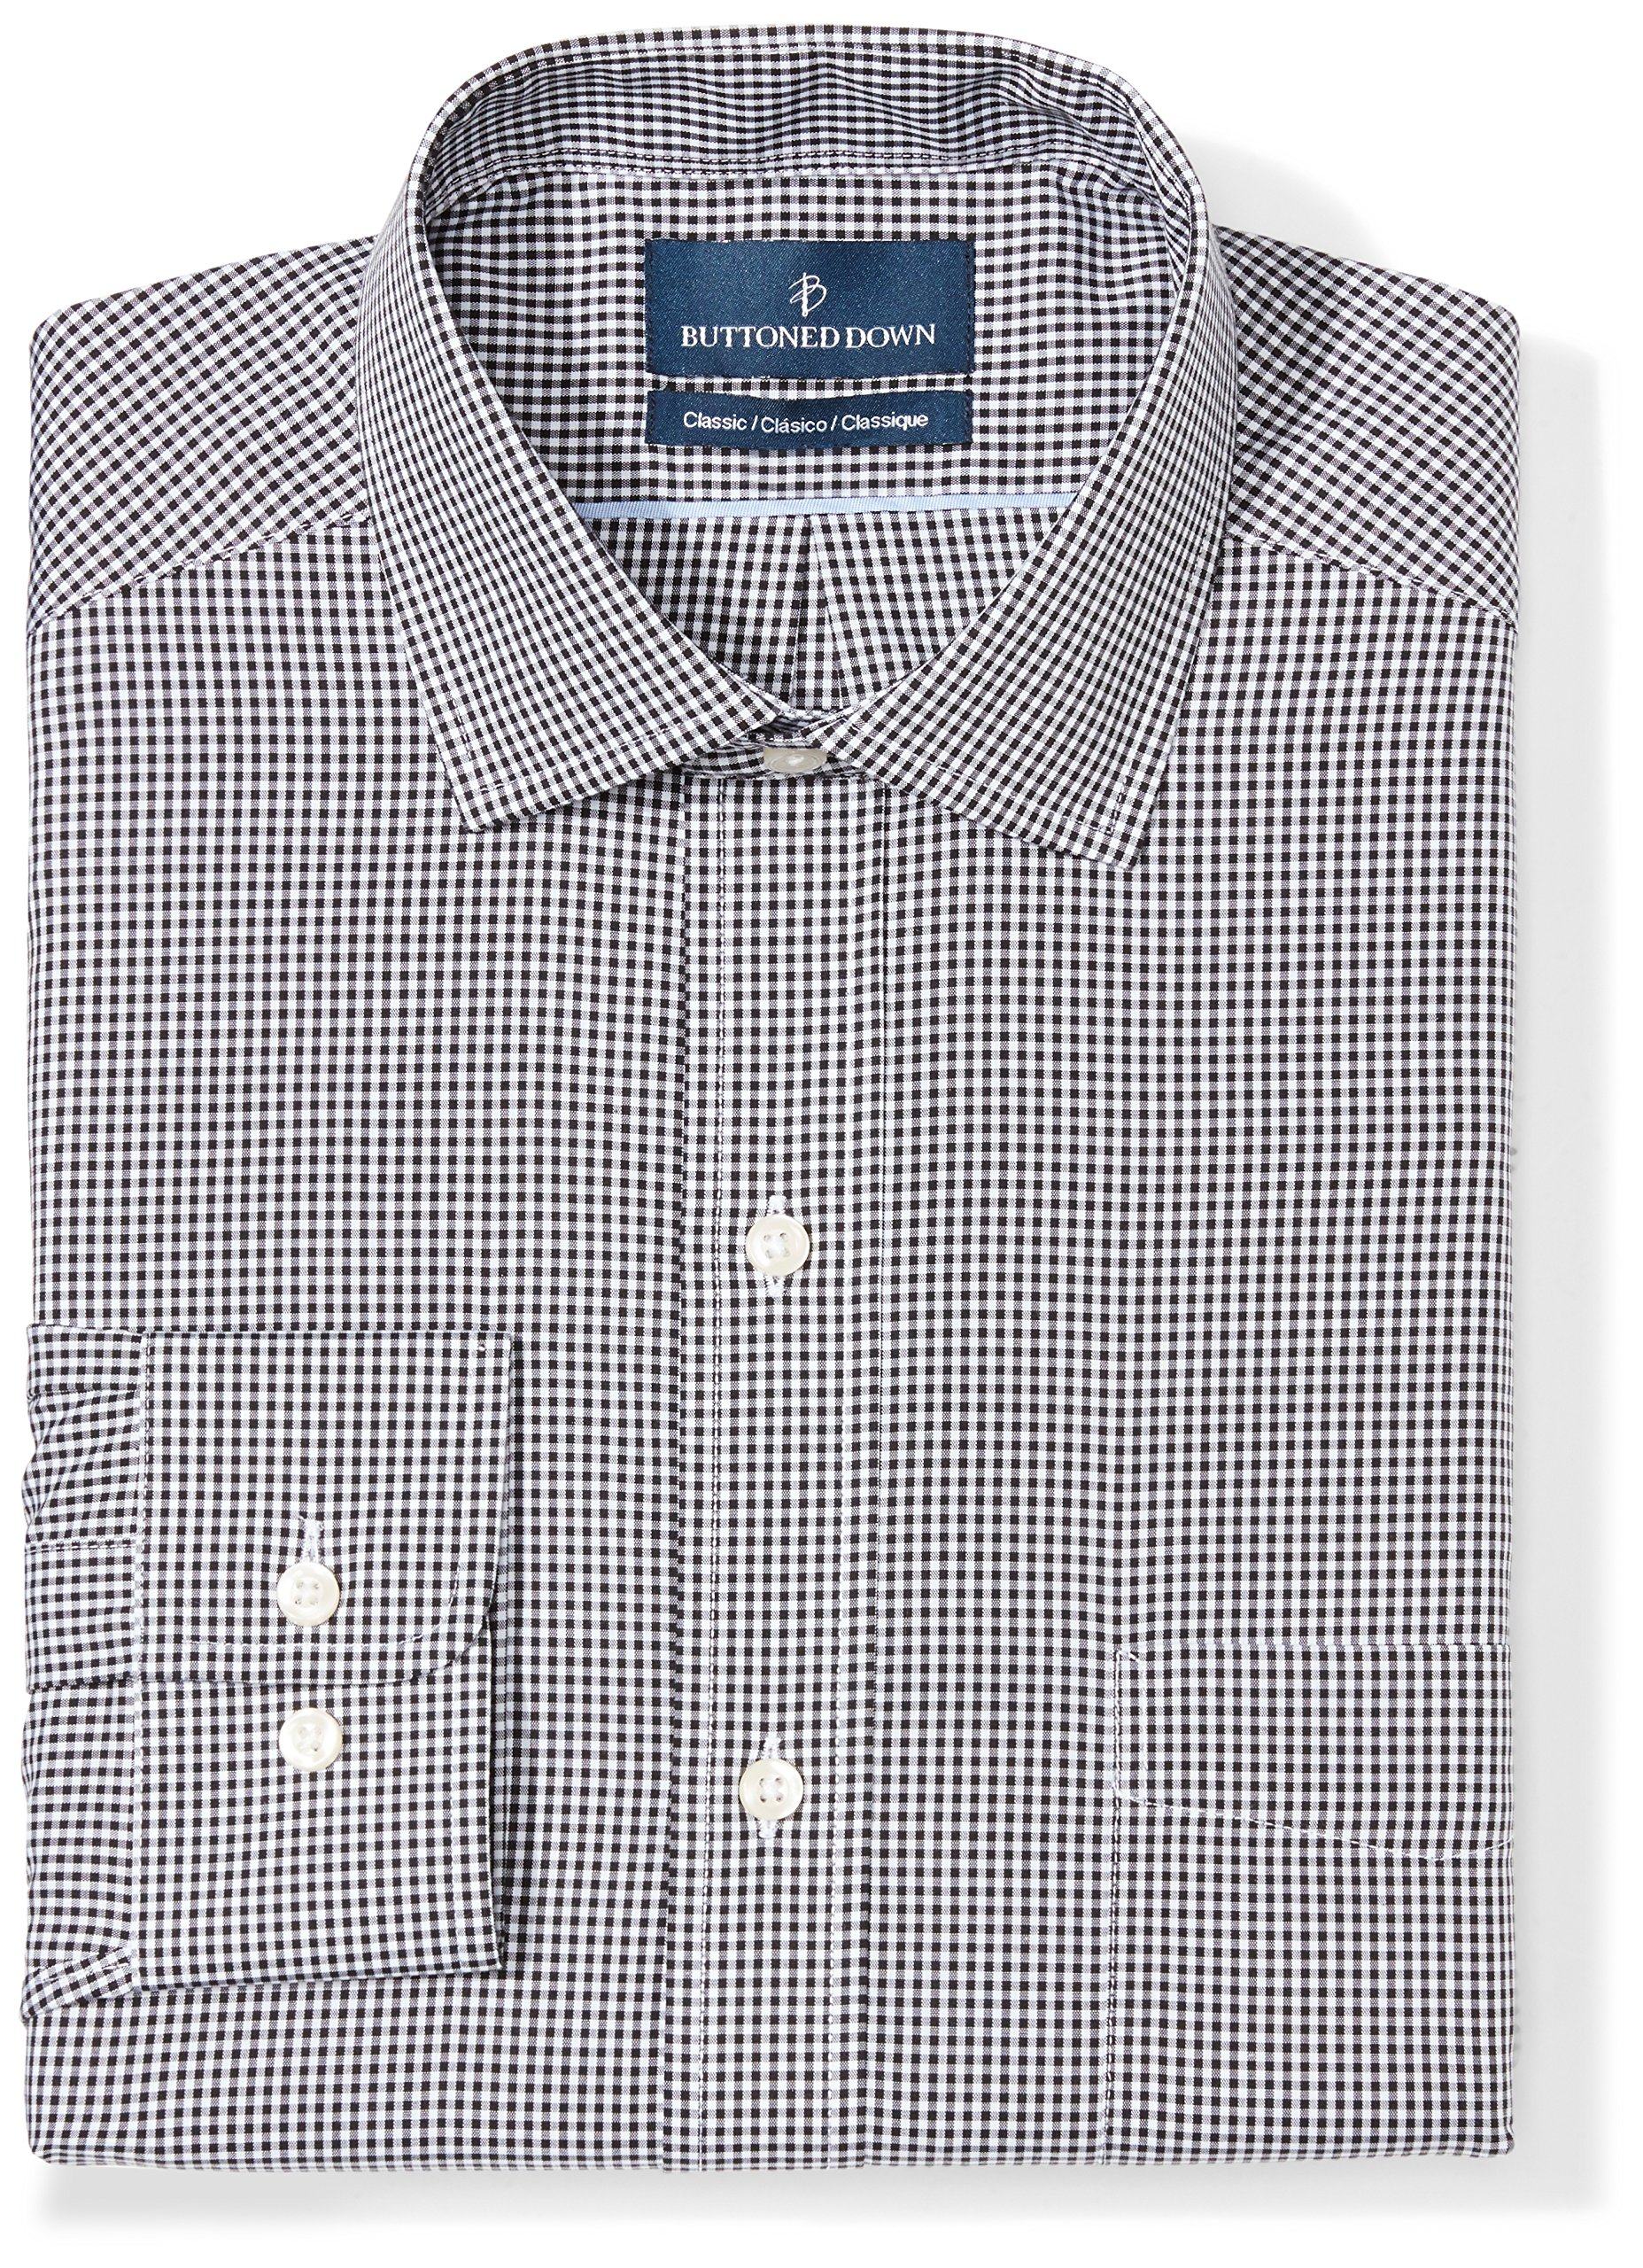 Buttoned Down Men's Classic Fit Spread-Collar Pattern Non-Iron Dress Shirt, Black Small Gingham, 19'' Neck 37'' Sleeve (Big and Tall) by Buttoned Down